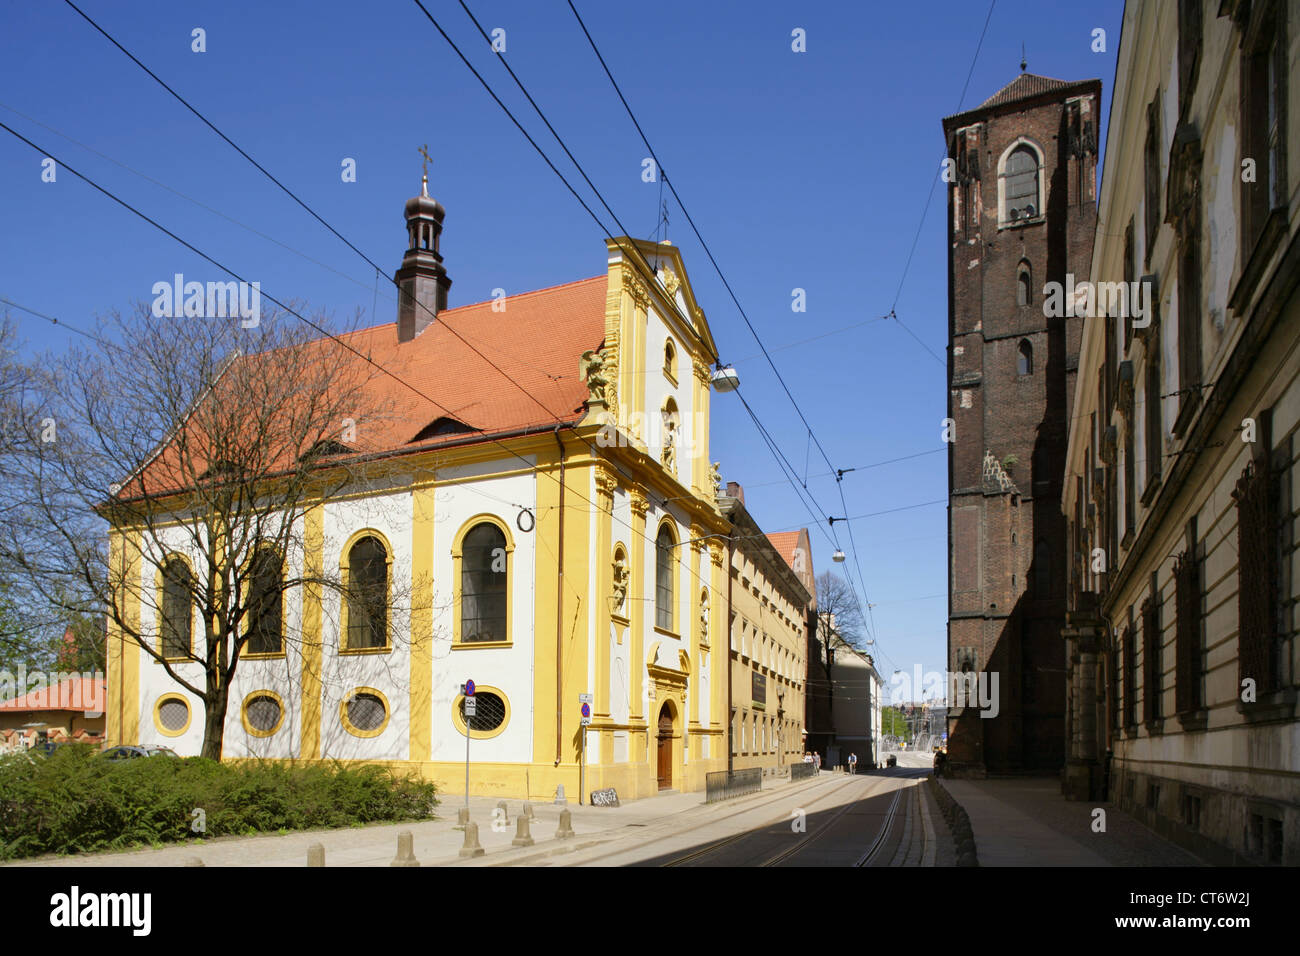 St Anne's Church, Wyspa Piasek, Wroclaw, or Breslau, Poland. Stock Photo